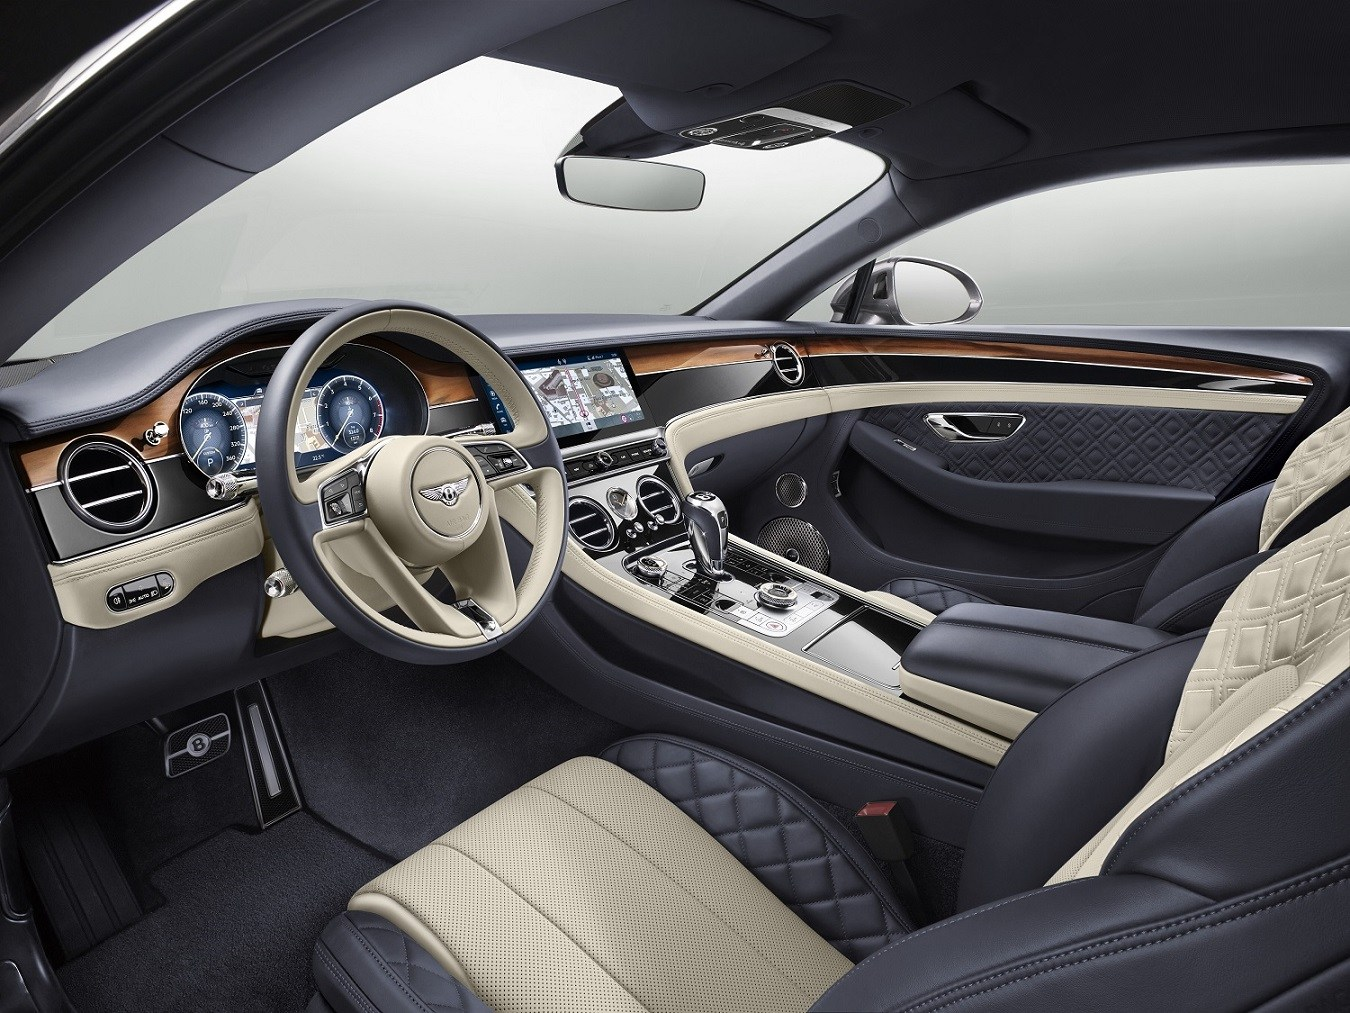 Luxury is Back: H νέα Bentley Continental GT στην Αθήνα